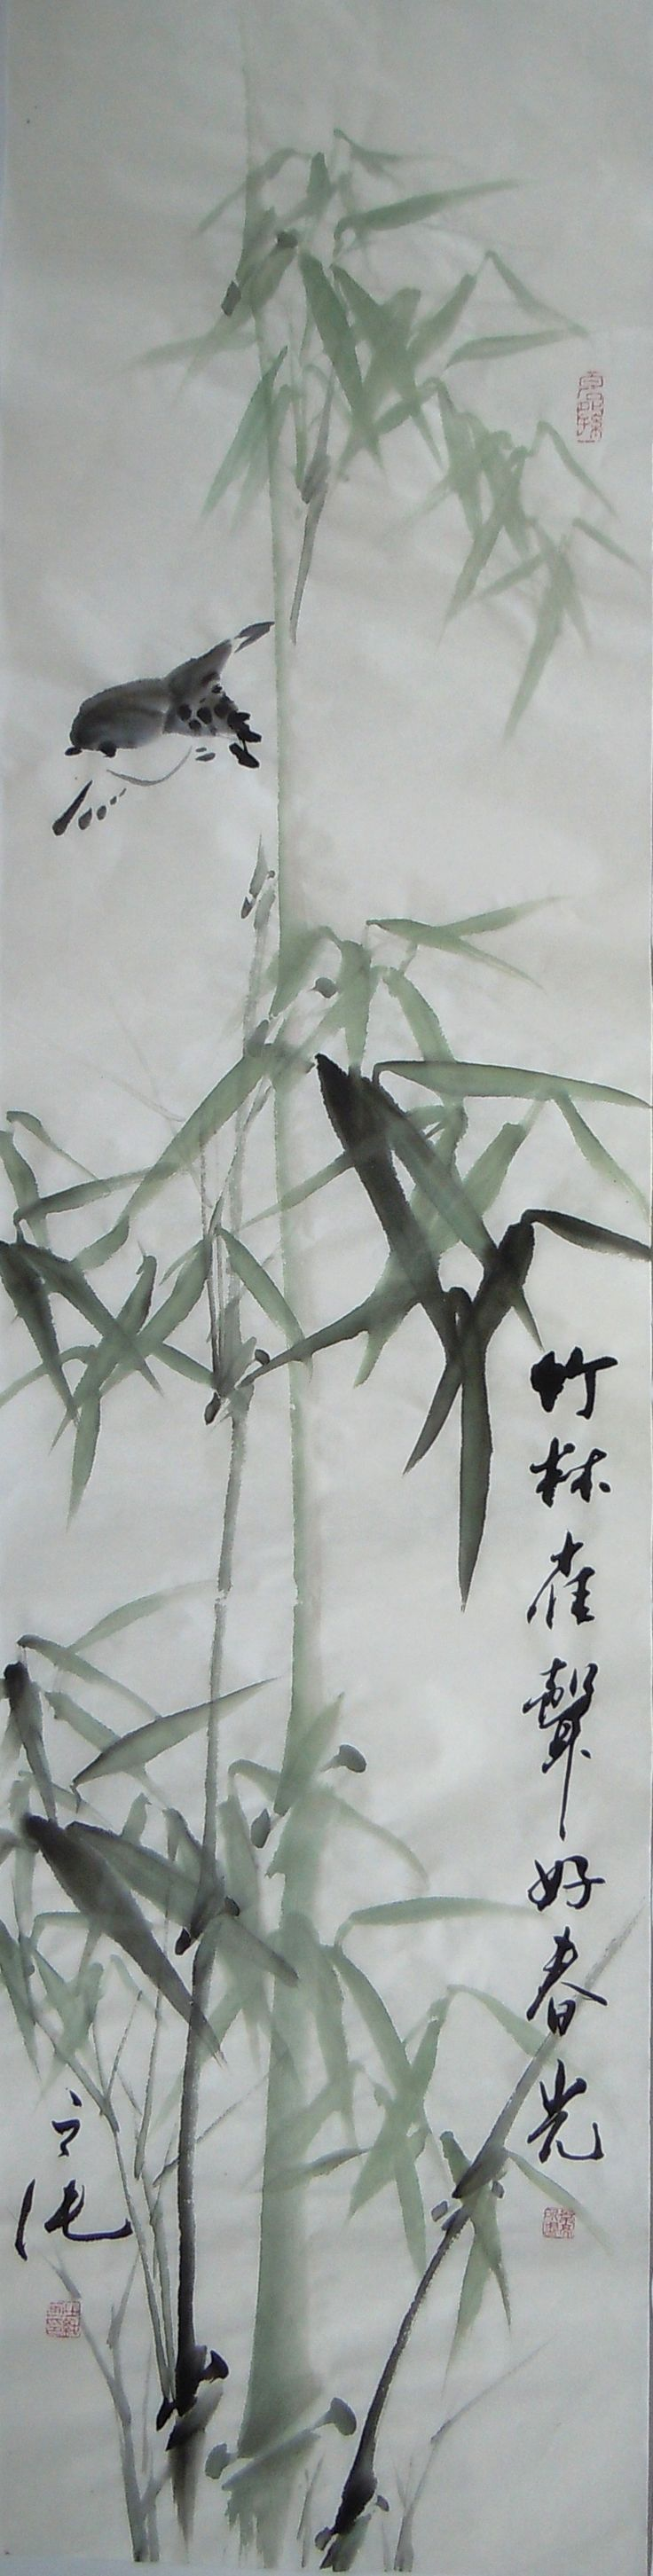 Sumi-e Sweet Sounds in Bamboo Forest of the Beautiful Spring / 竹林雀声好春光